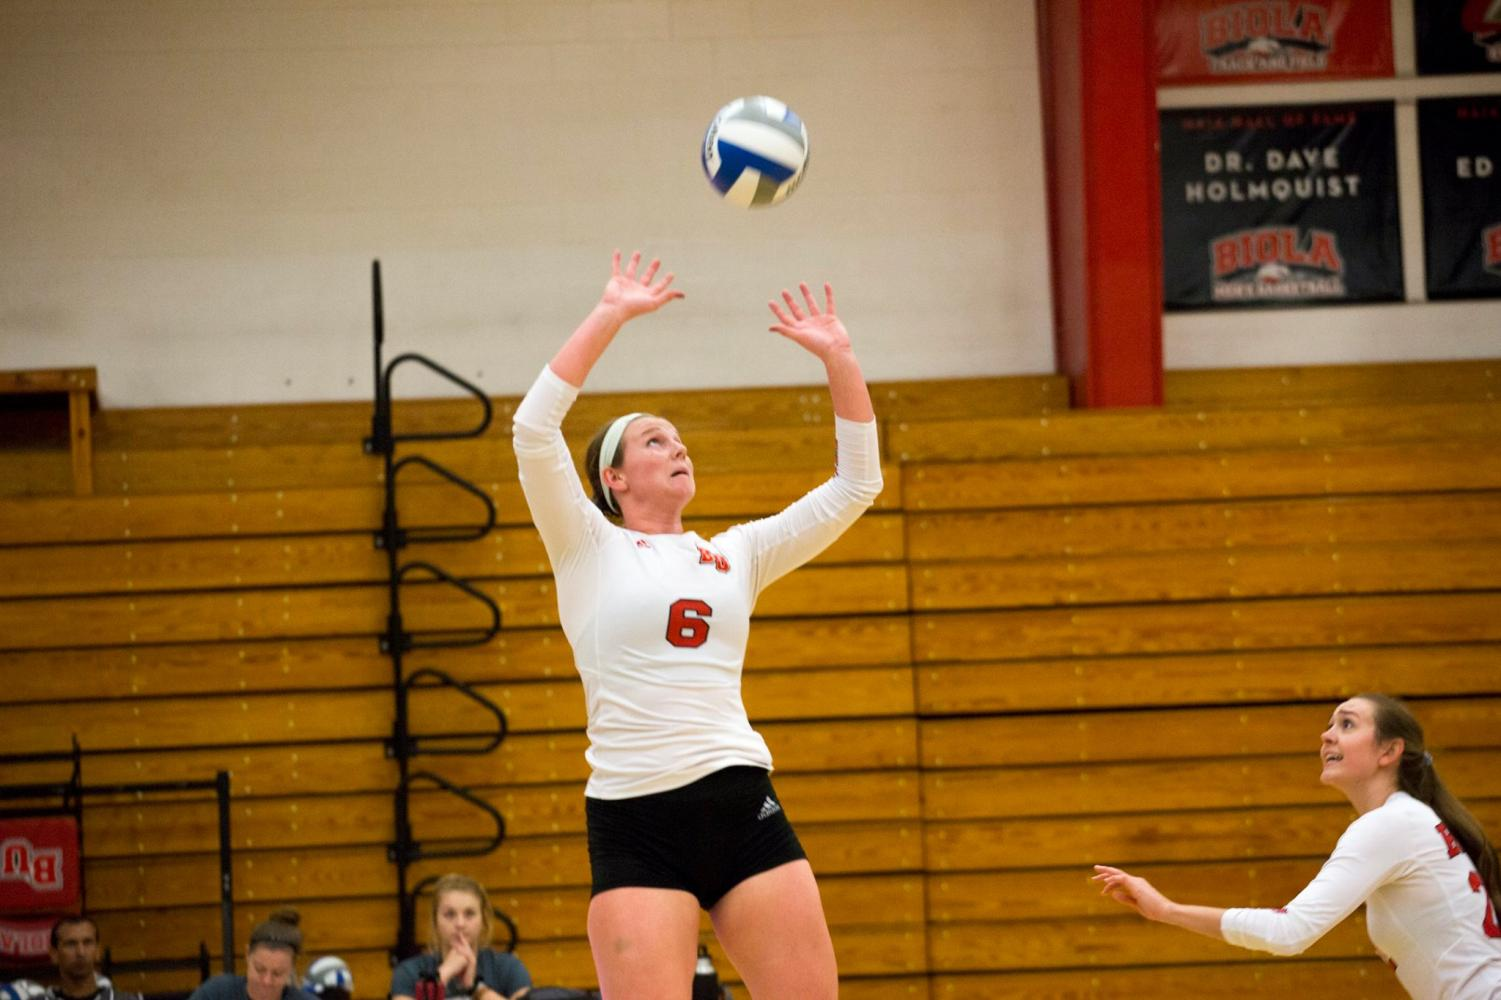 Brinley Beresford prepares to receive the ball during the Thursday game against Hawaii Hilo University, which ended in a five-set loss. The Eagles went on to a Saturday sweep against Hawaii Pacific University.